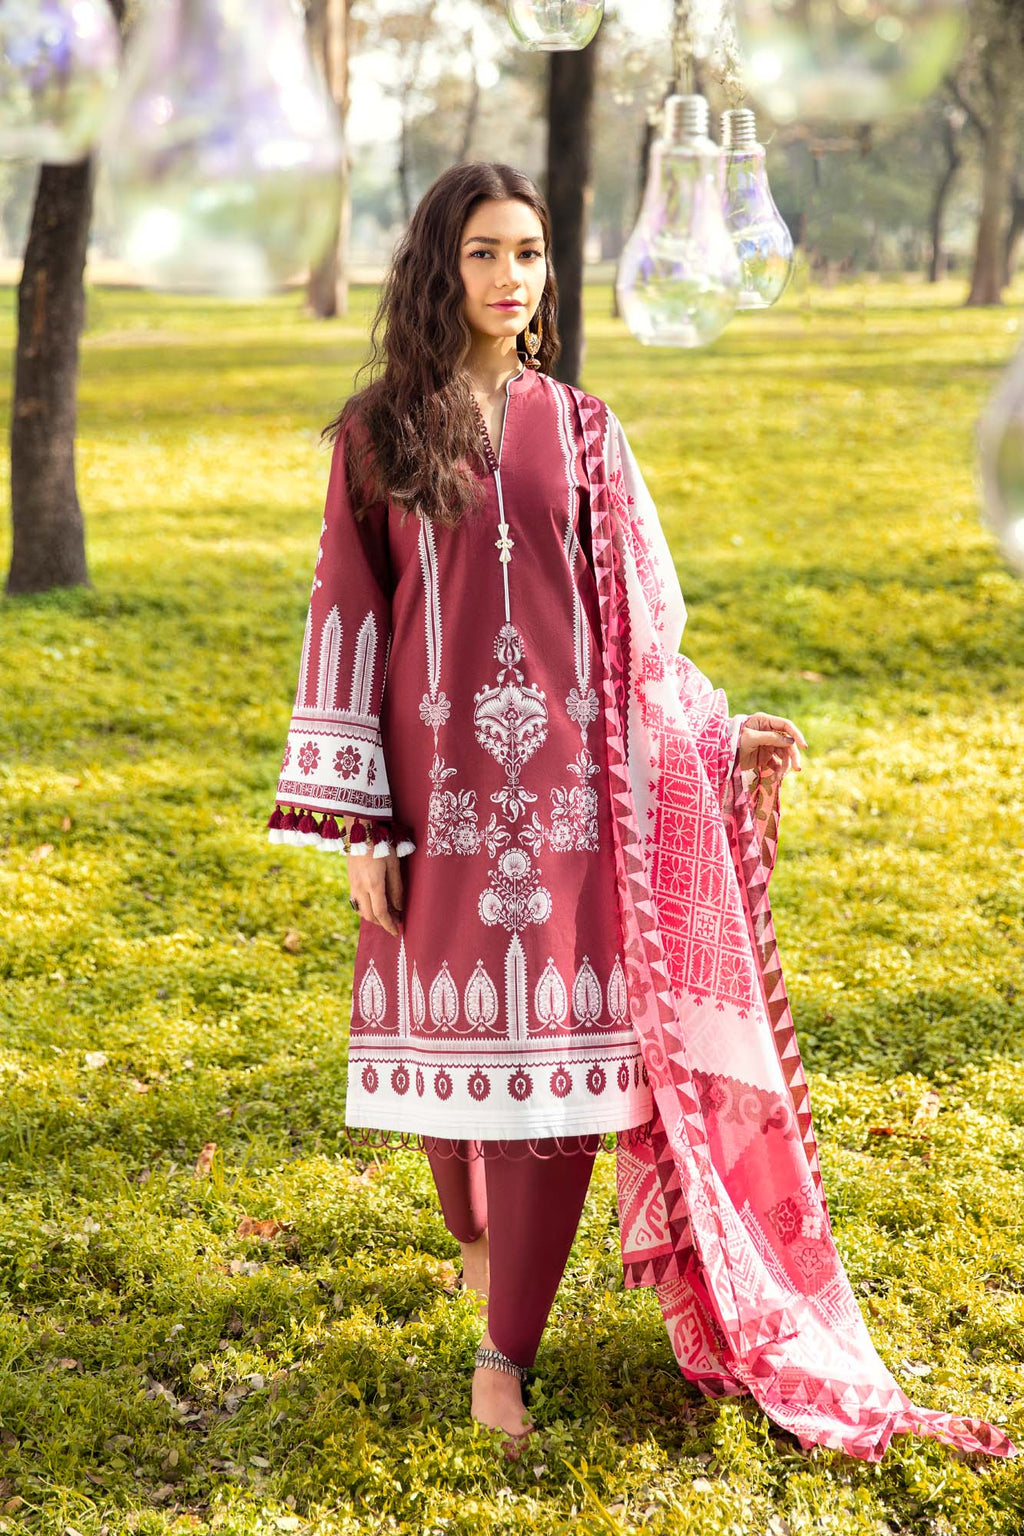 CRAFTY (WUC101376) - Ethnic by Outfitters